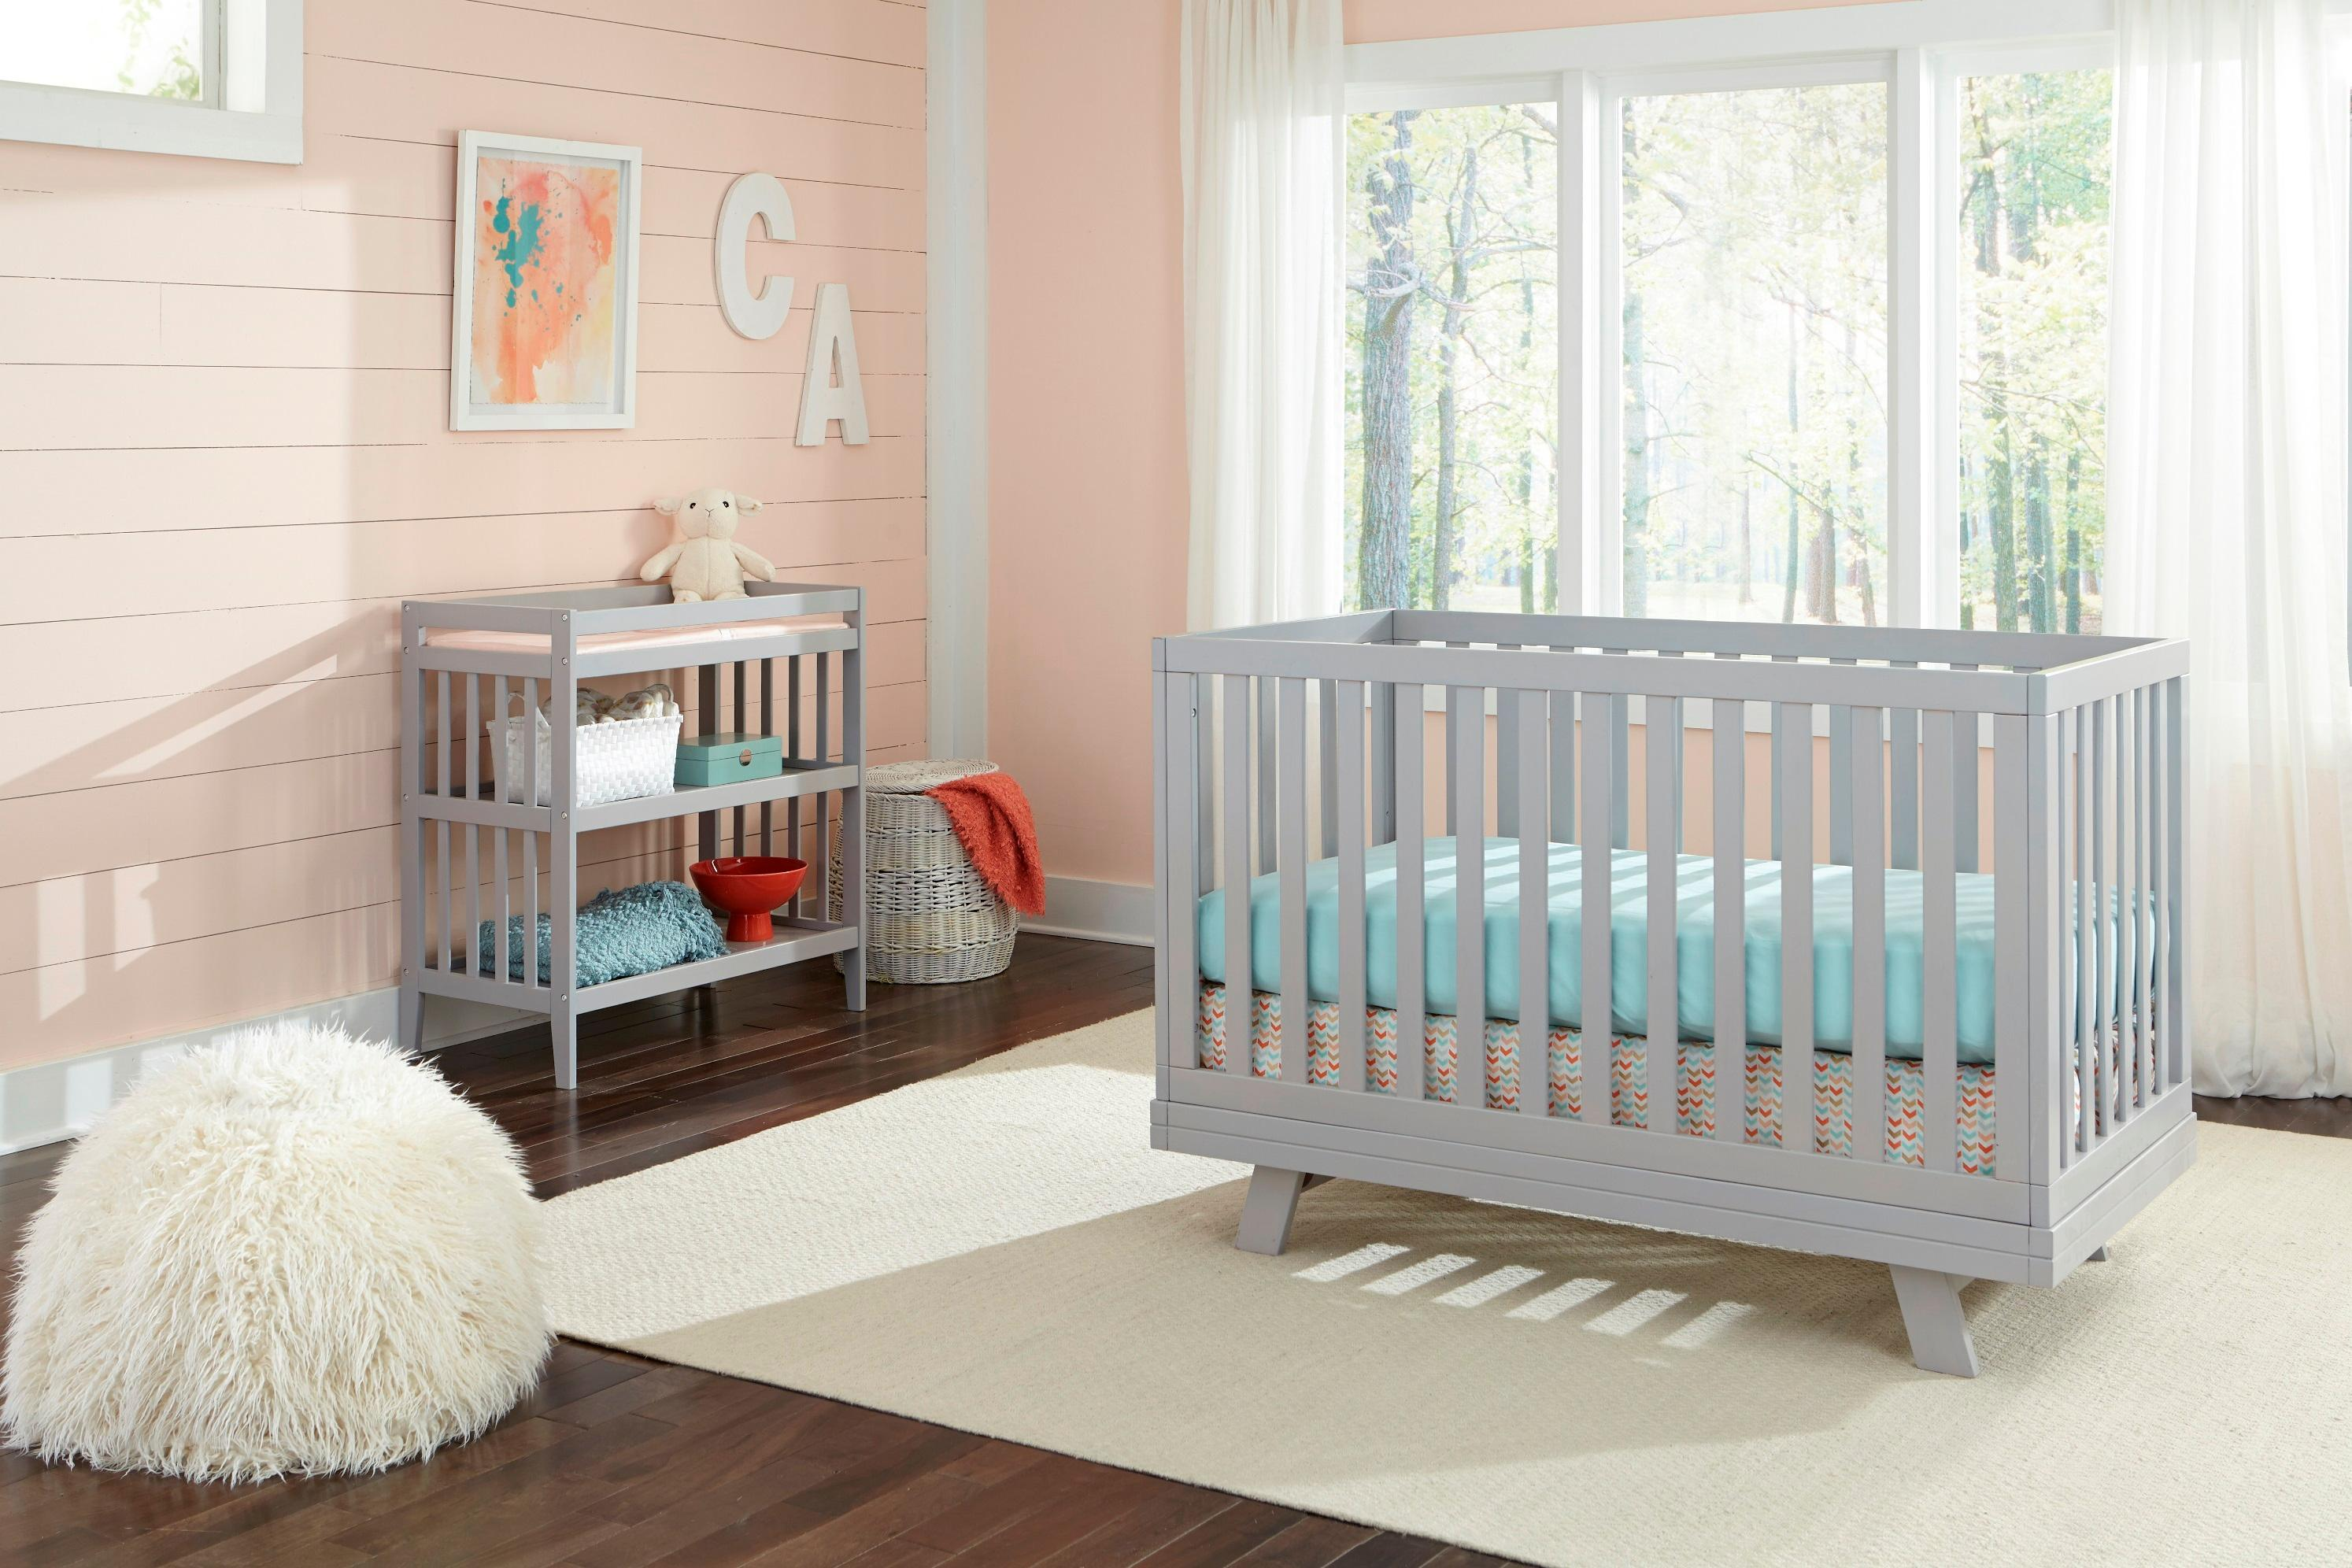 next cribs crib factory serenity through toddler natural collections compact select detail see safereach infant clearview gen